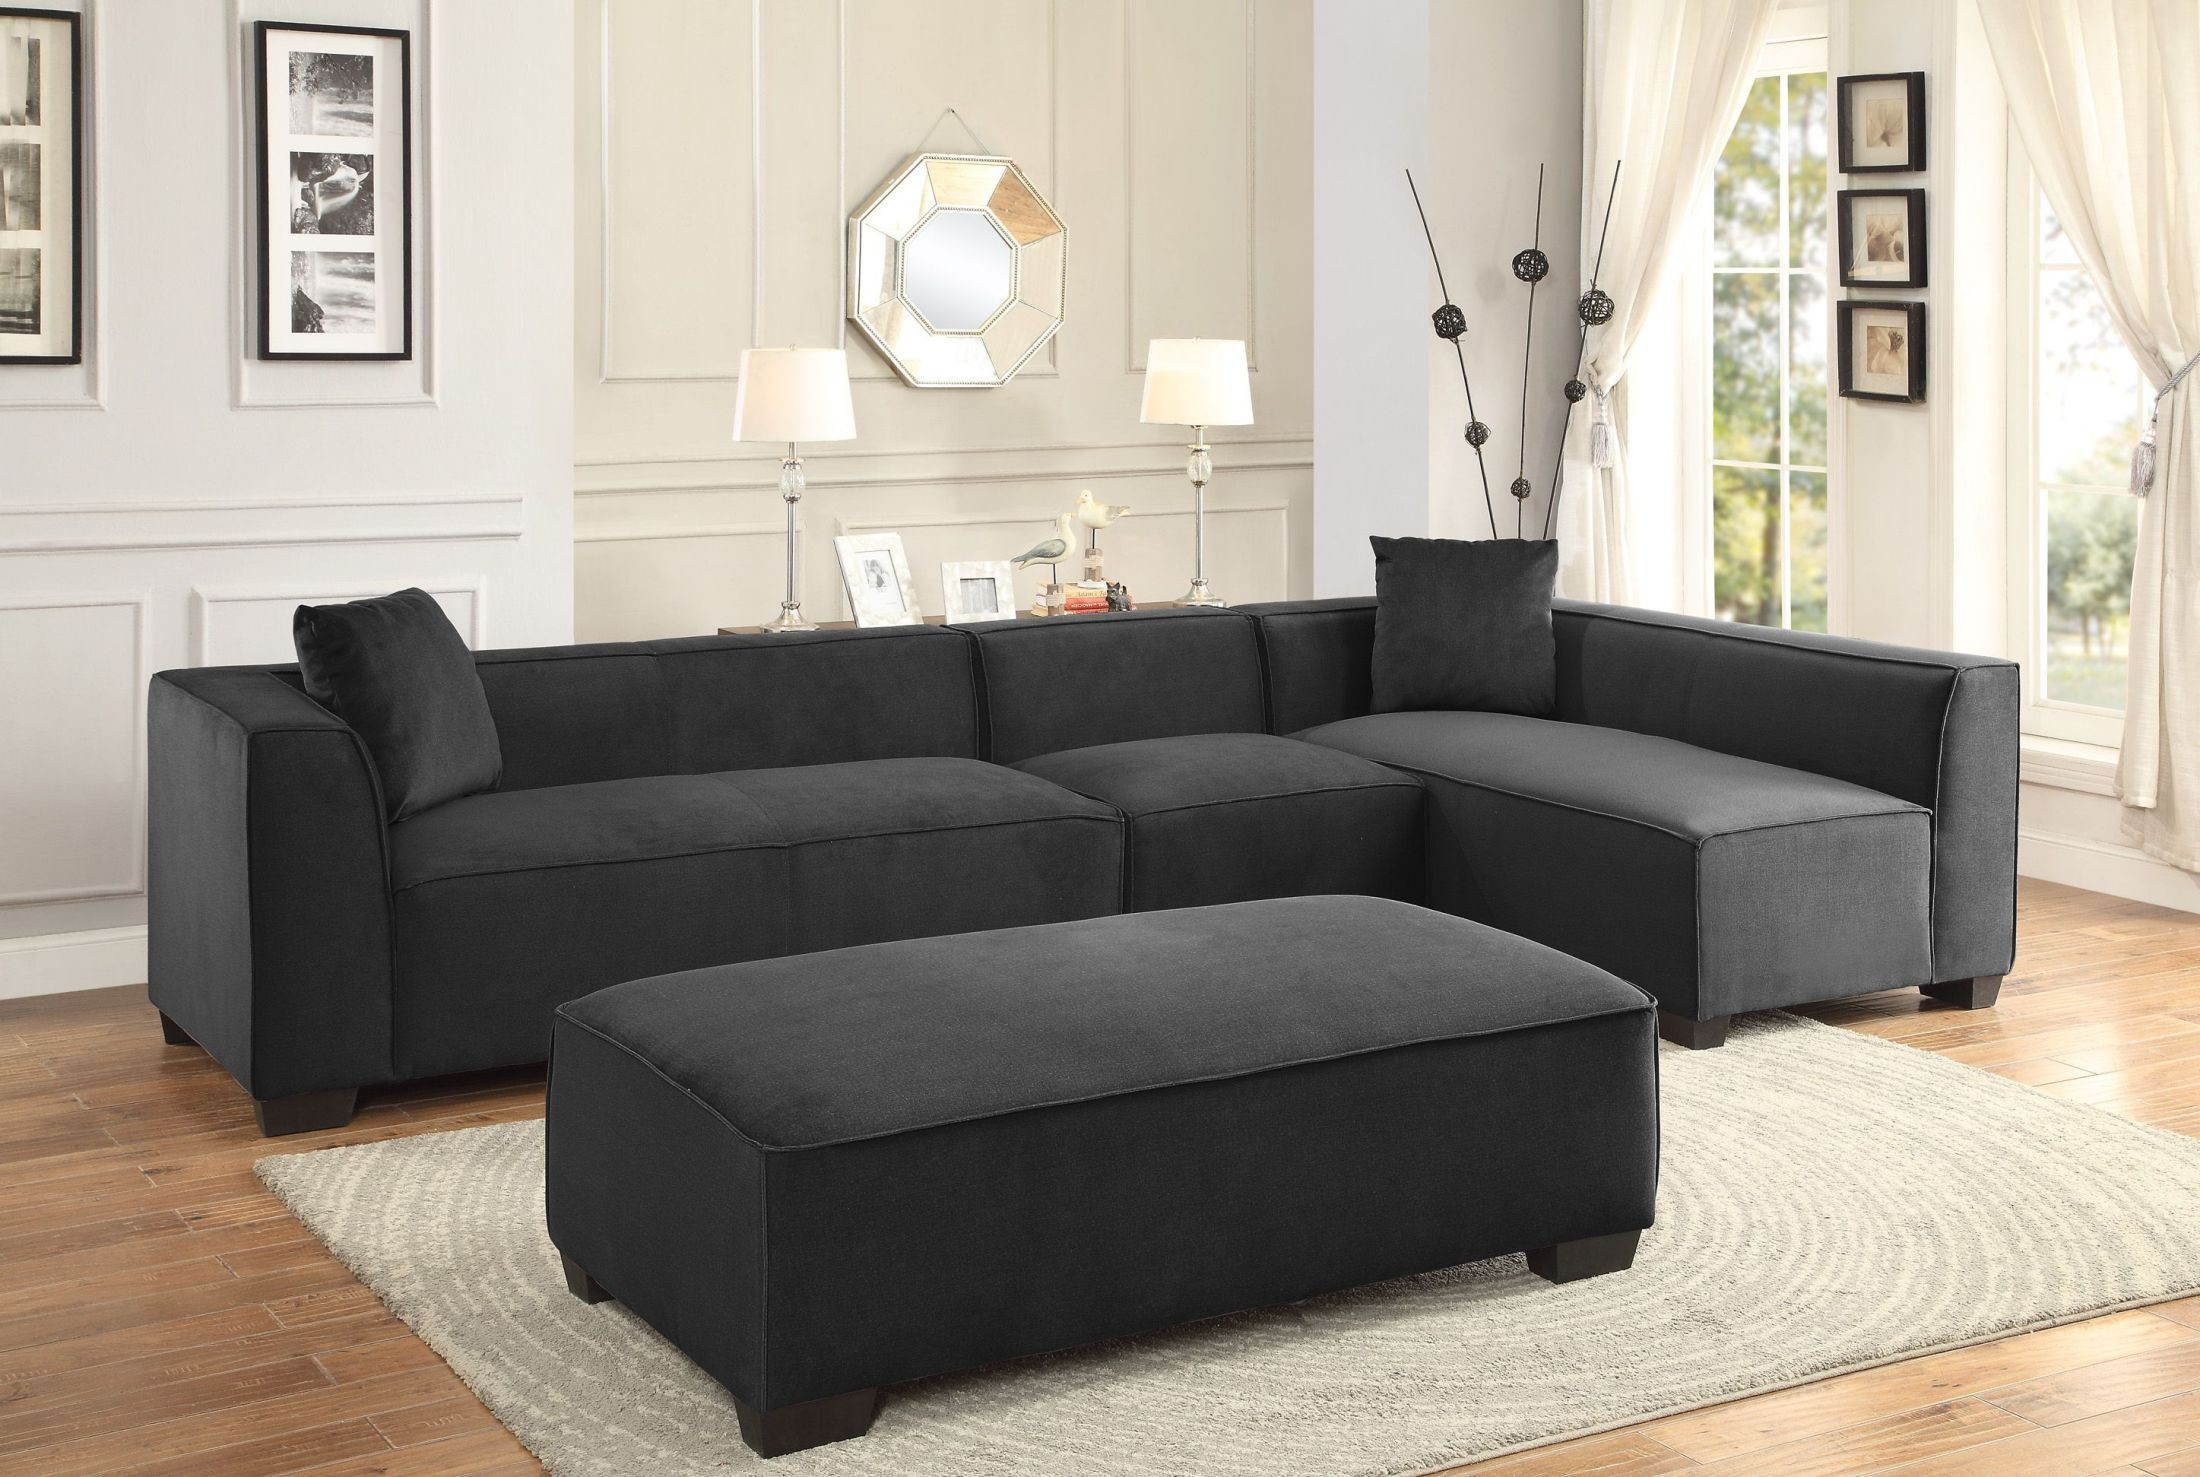 Metz Gray Sectional from Homelegance